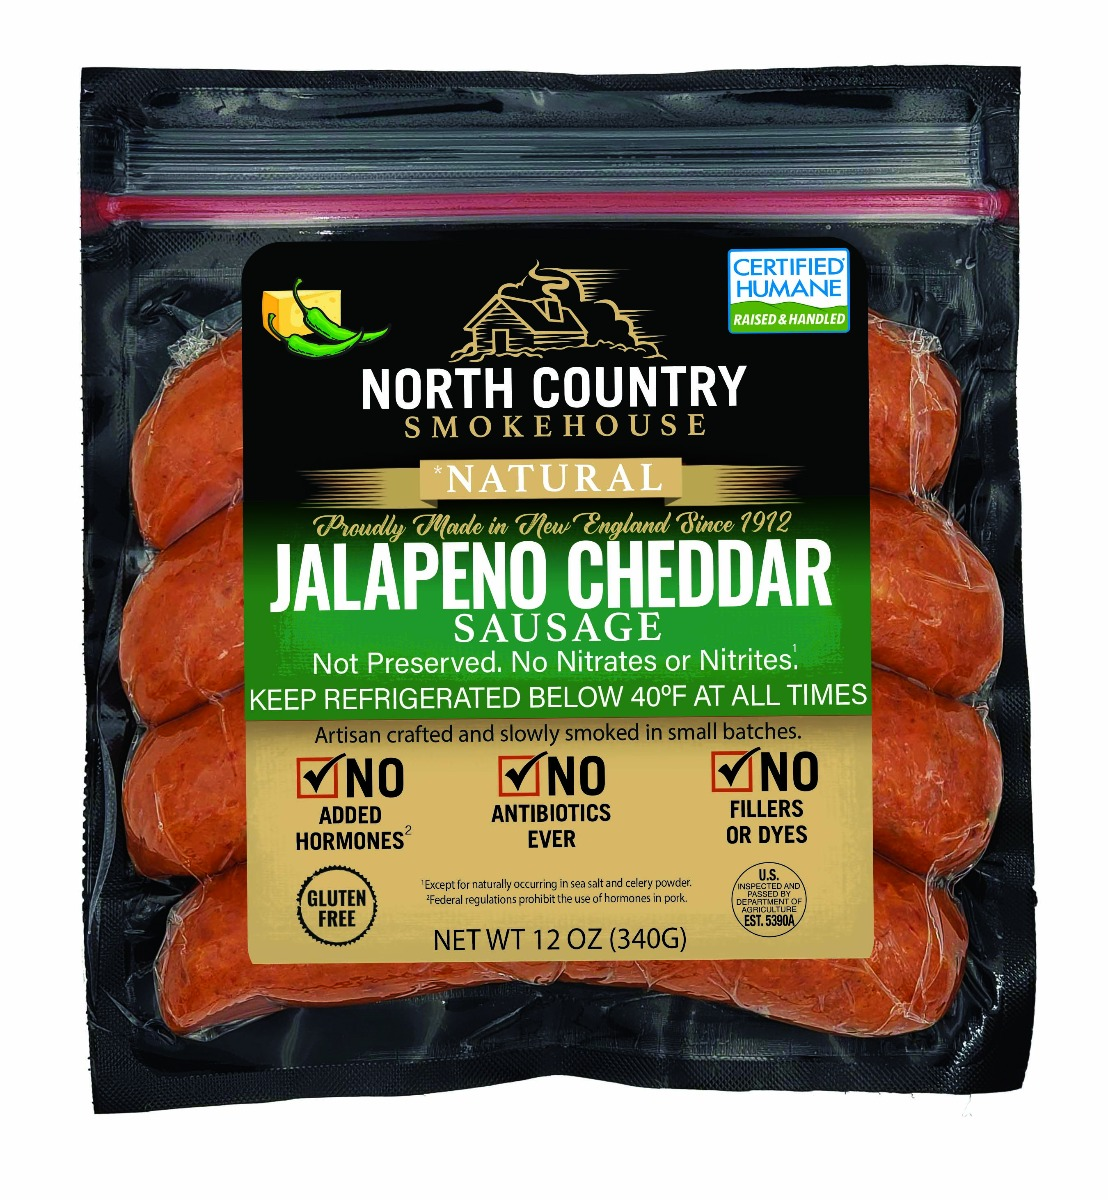 Natural Jalapeno Cheddar Sausage - 3, 12 oz. packages